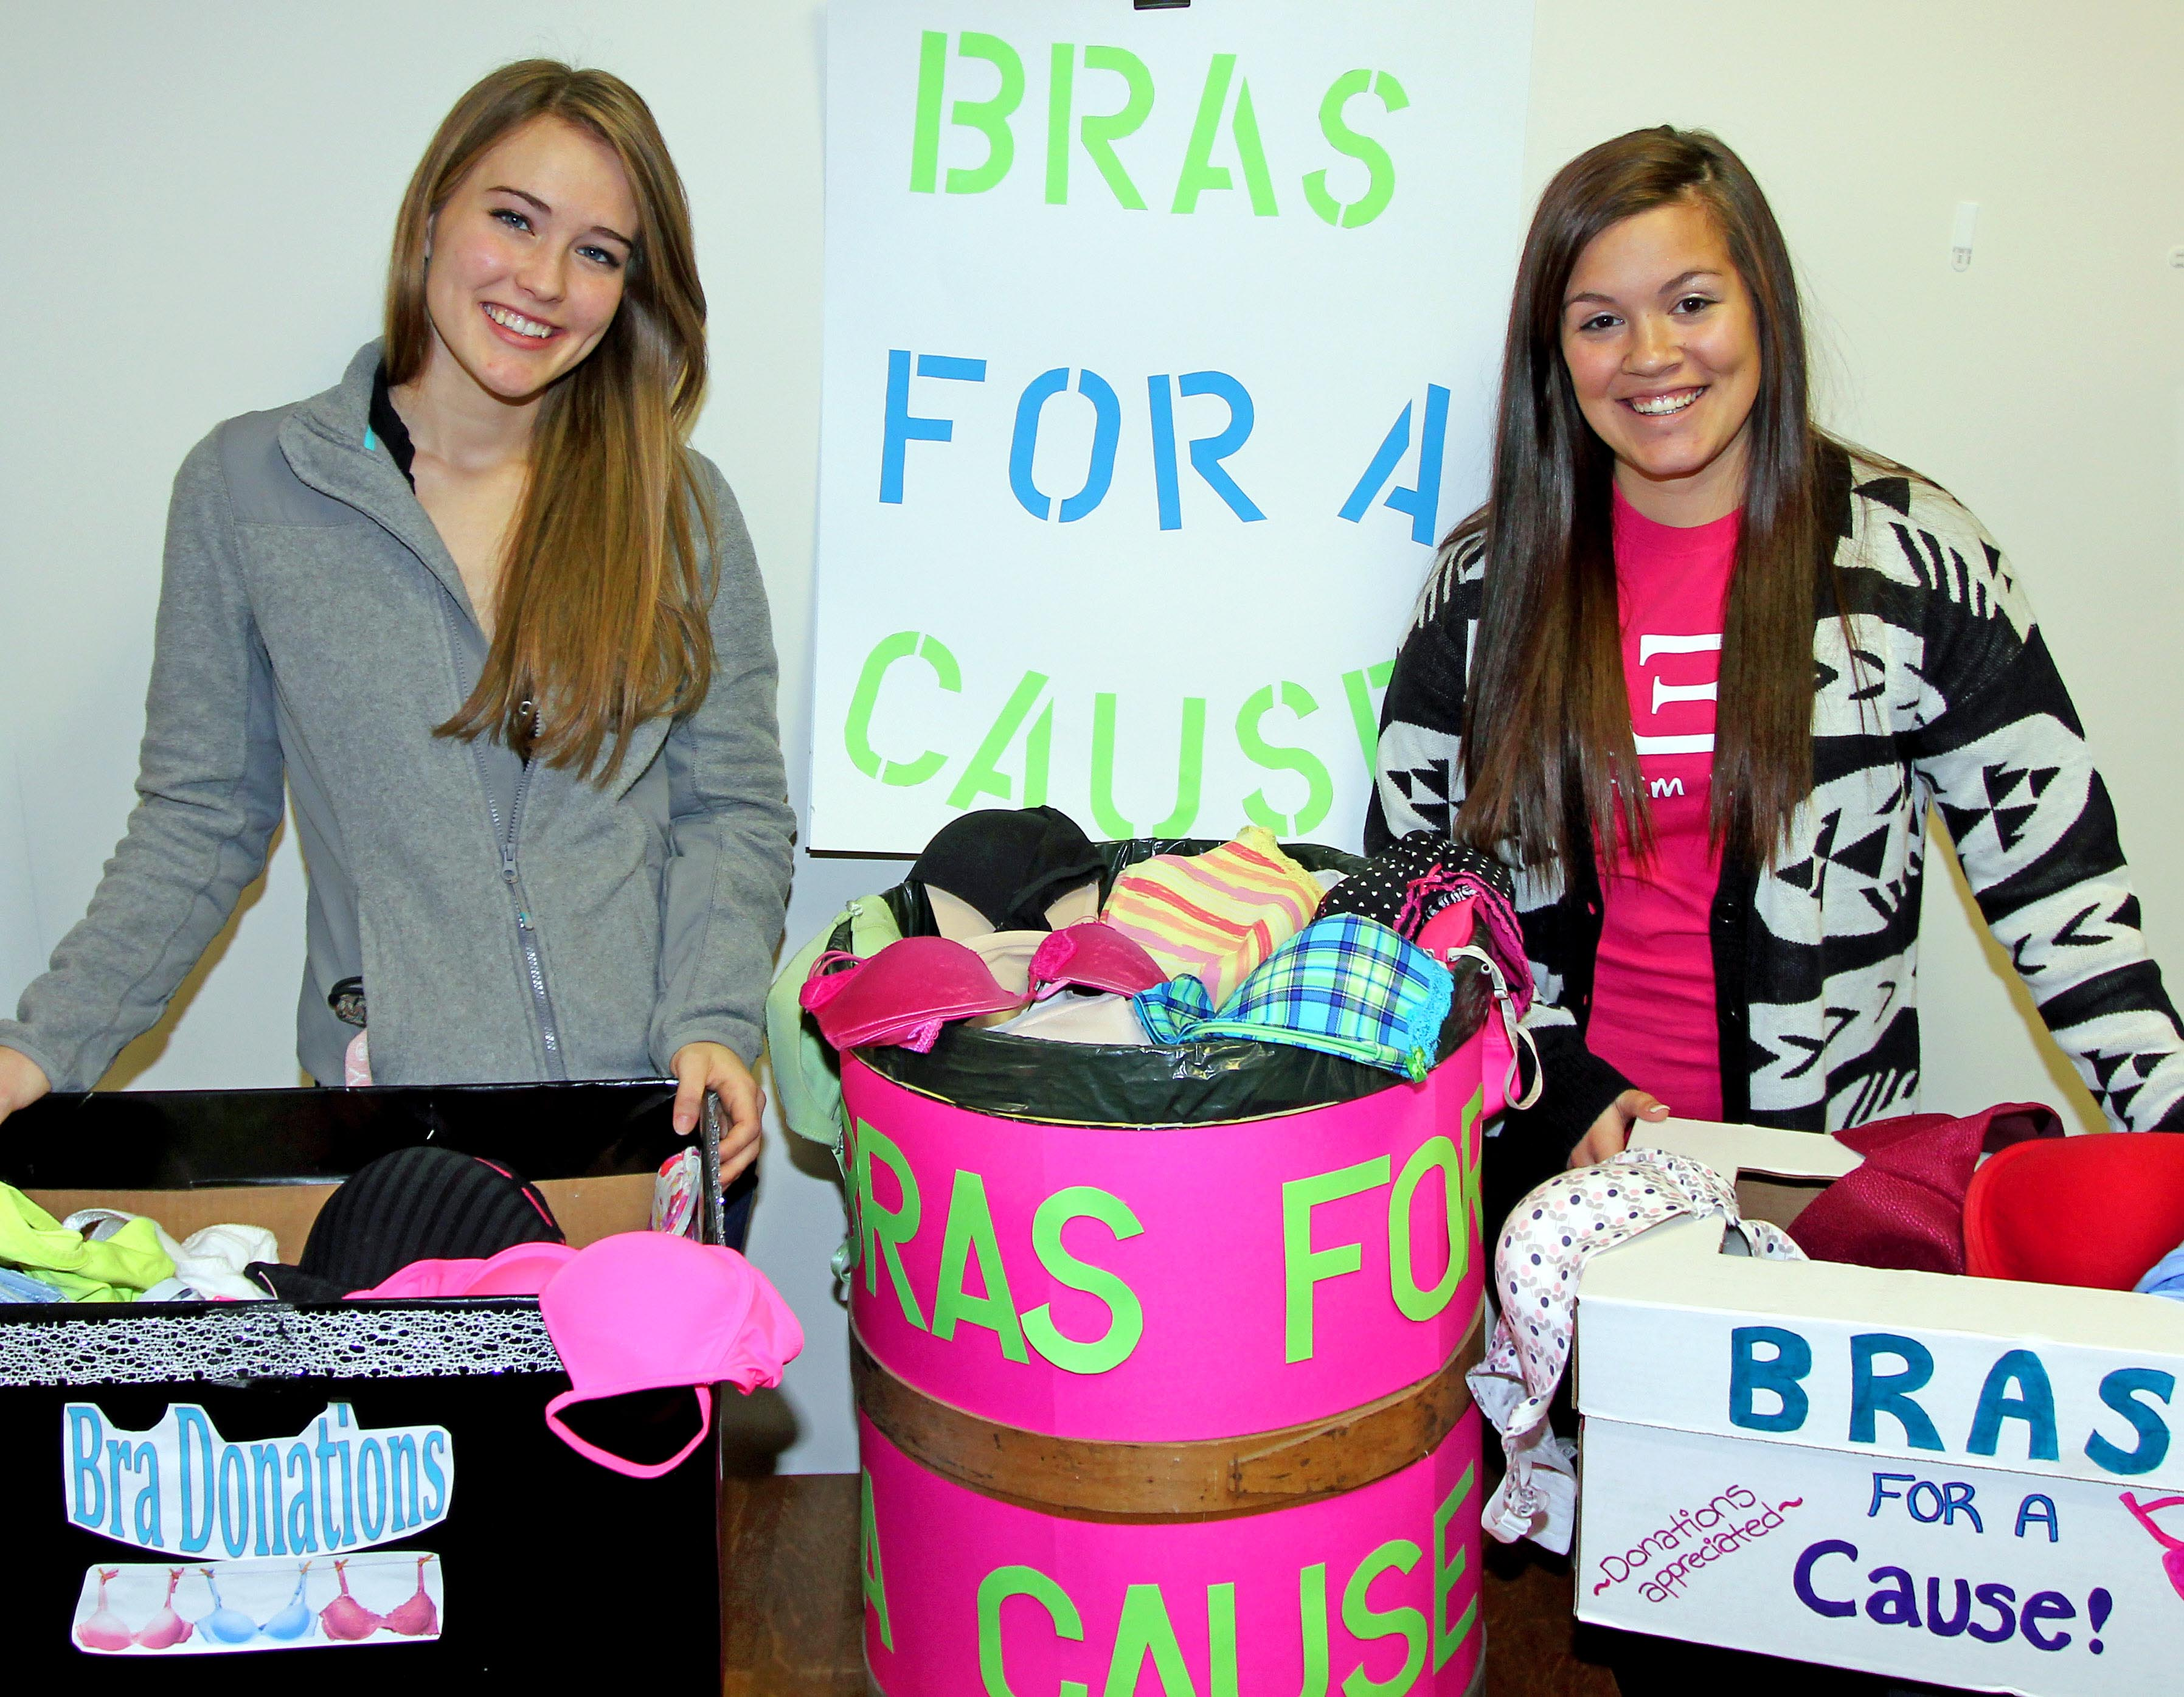 UNK students Ashley Nielsen, left, of Gering and Megan Rash, right, of Kearney are among those collecting gently used bras for Free the Girls, a nonprofit that provides women rescued from sex trafficking an opportunity to earn a living by selling used clothing. (Photo by Todd Gottula/UNK News)